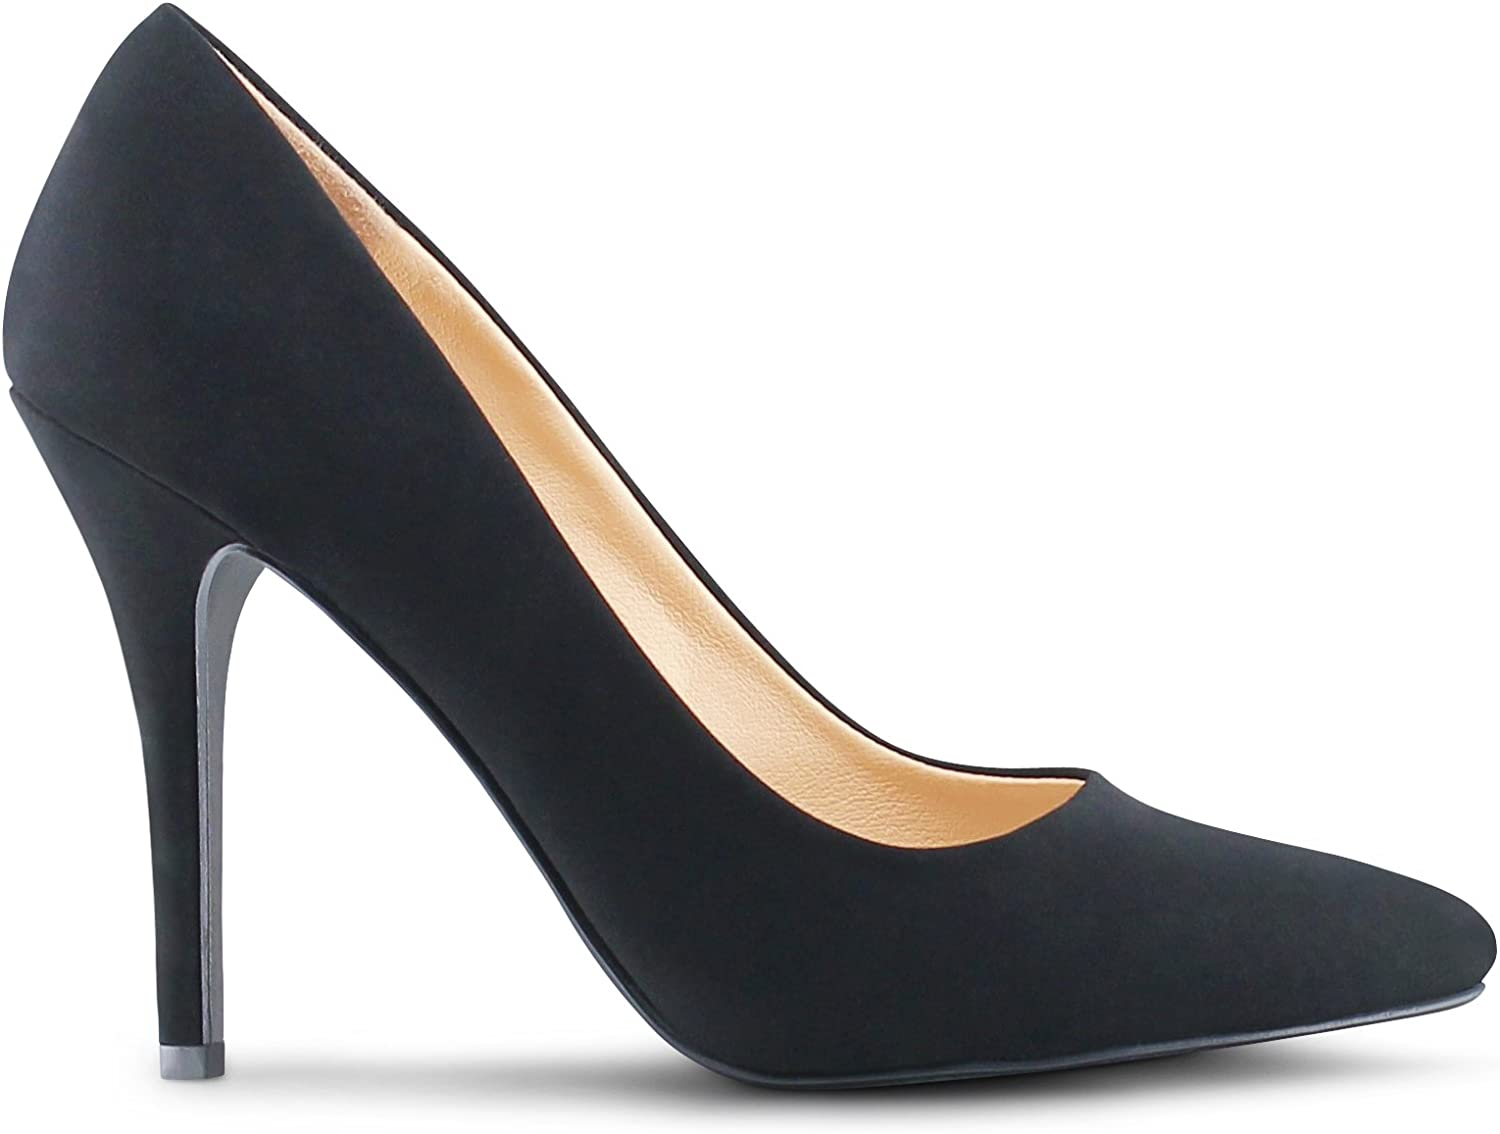 Womens Pointy Toe High Heels Stiletto Dress Pumps